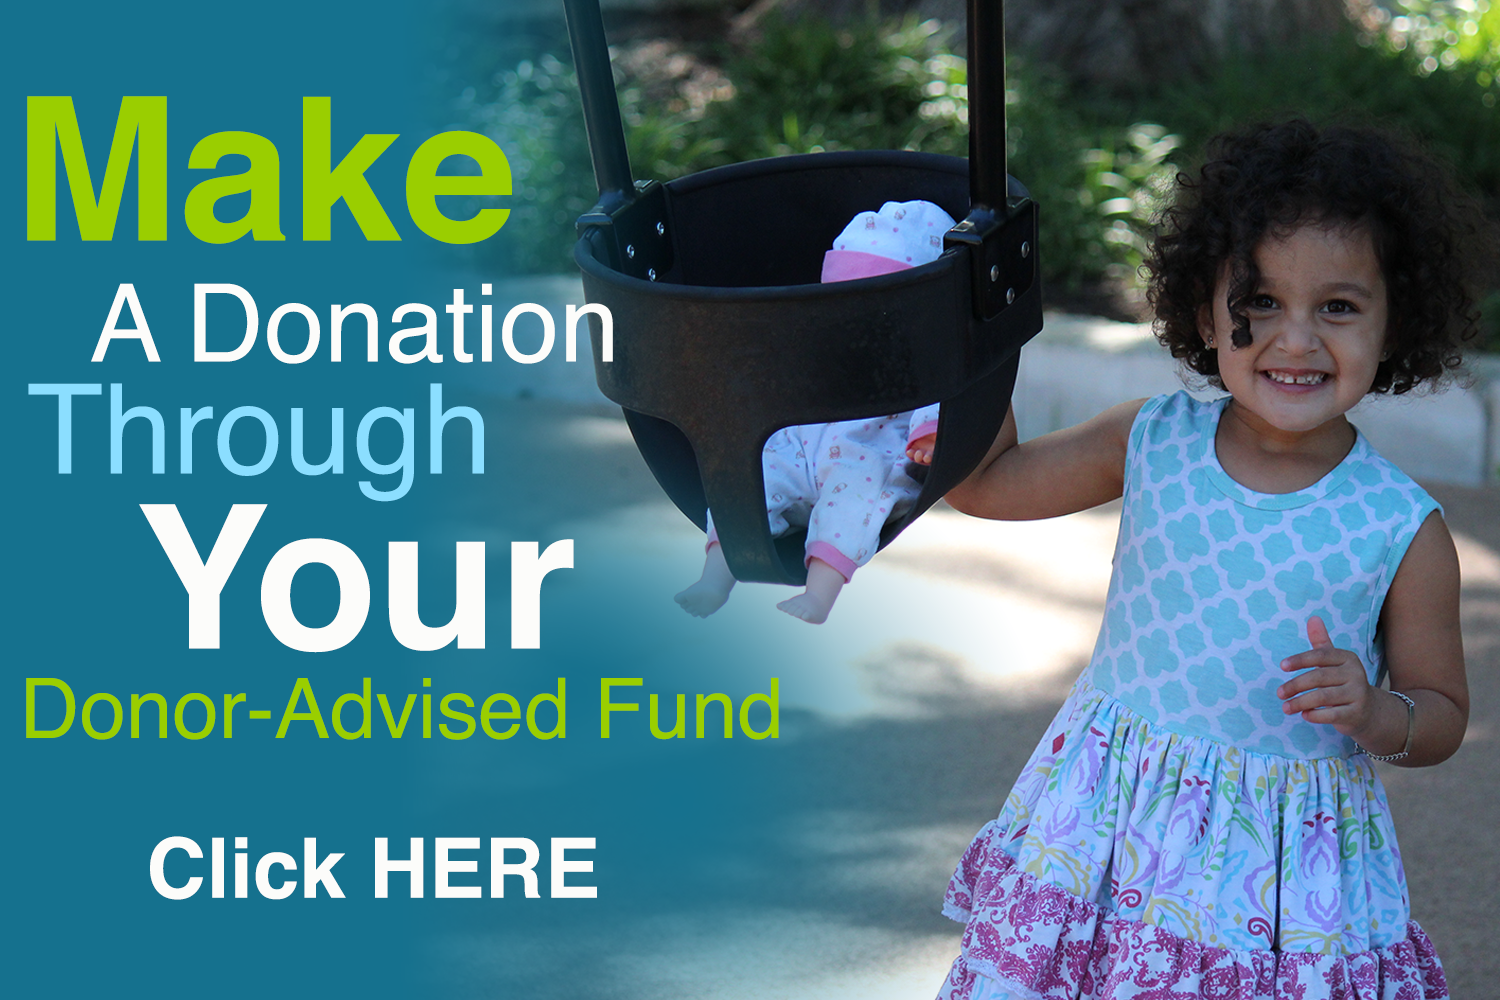 Make a donation through your donor advised fund.